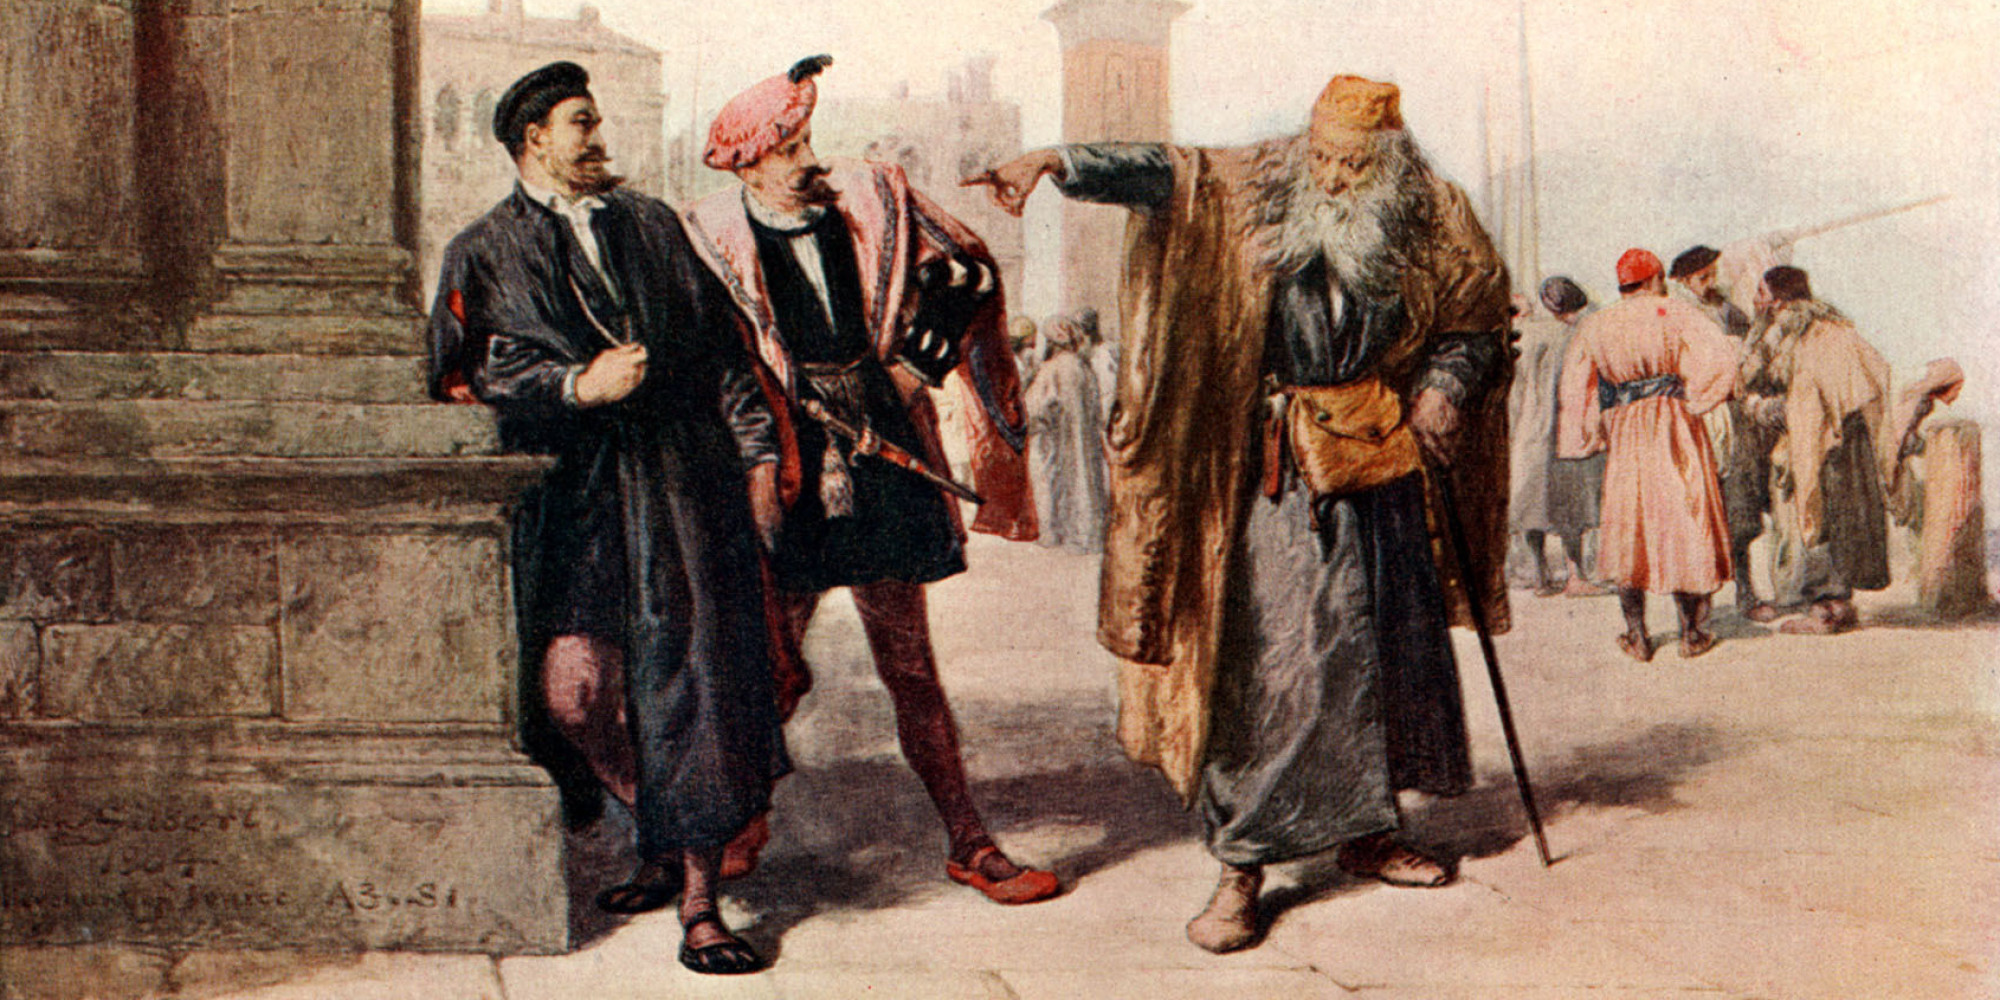 shakespeare essays merchant of venice Merchant of venice - shylock essays: over 180,000 merchant of venice - shylock essays,  i feel as though shakespeare had intentions to manipulate our feelings toward shylock throughout the play showed next 250 characters.